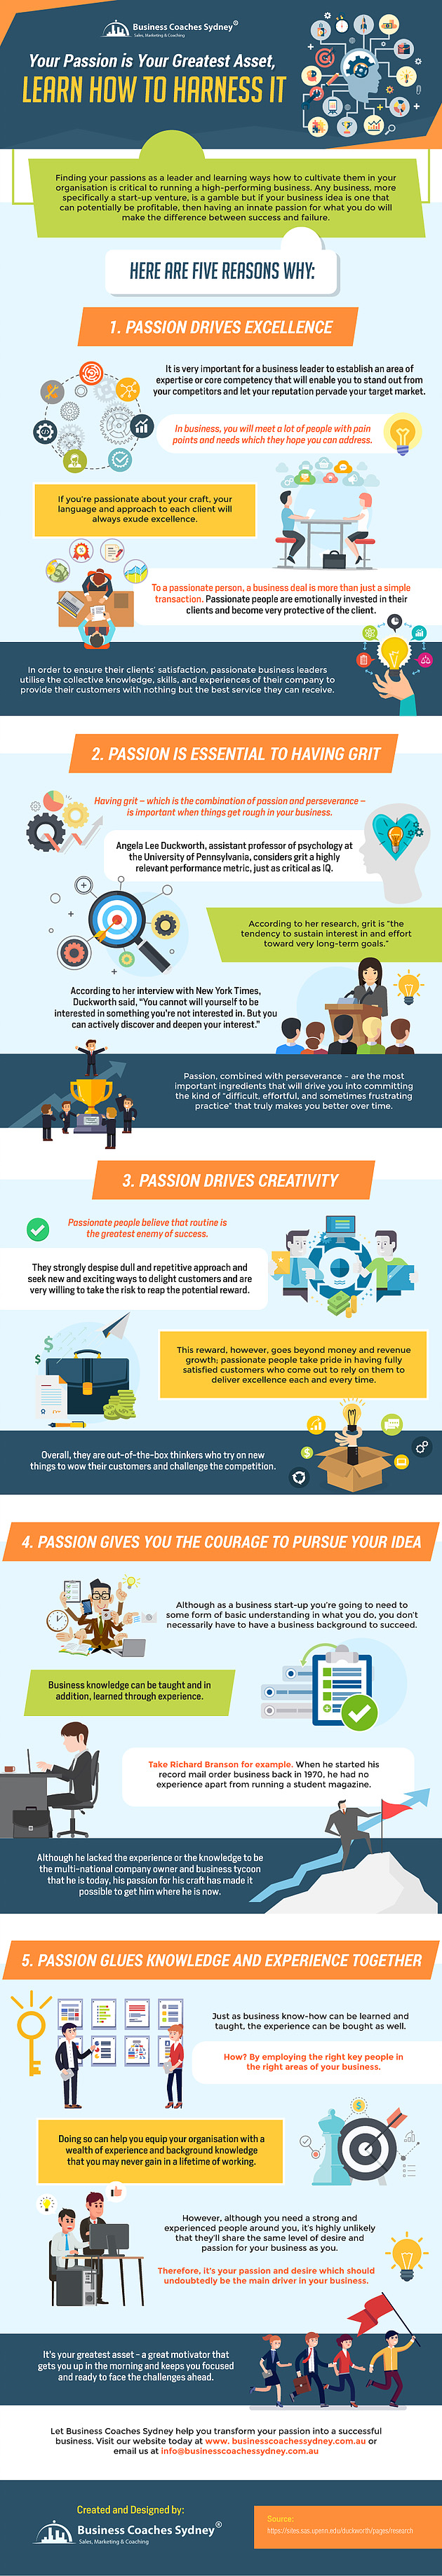 Your Passion is Your Greatest Asset [Infographic]